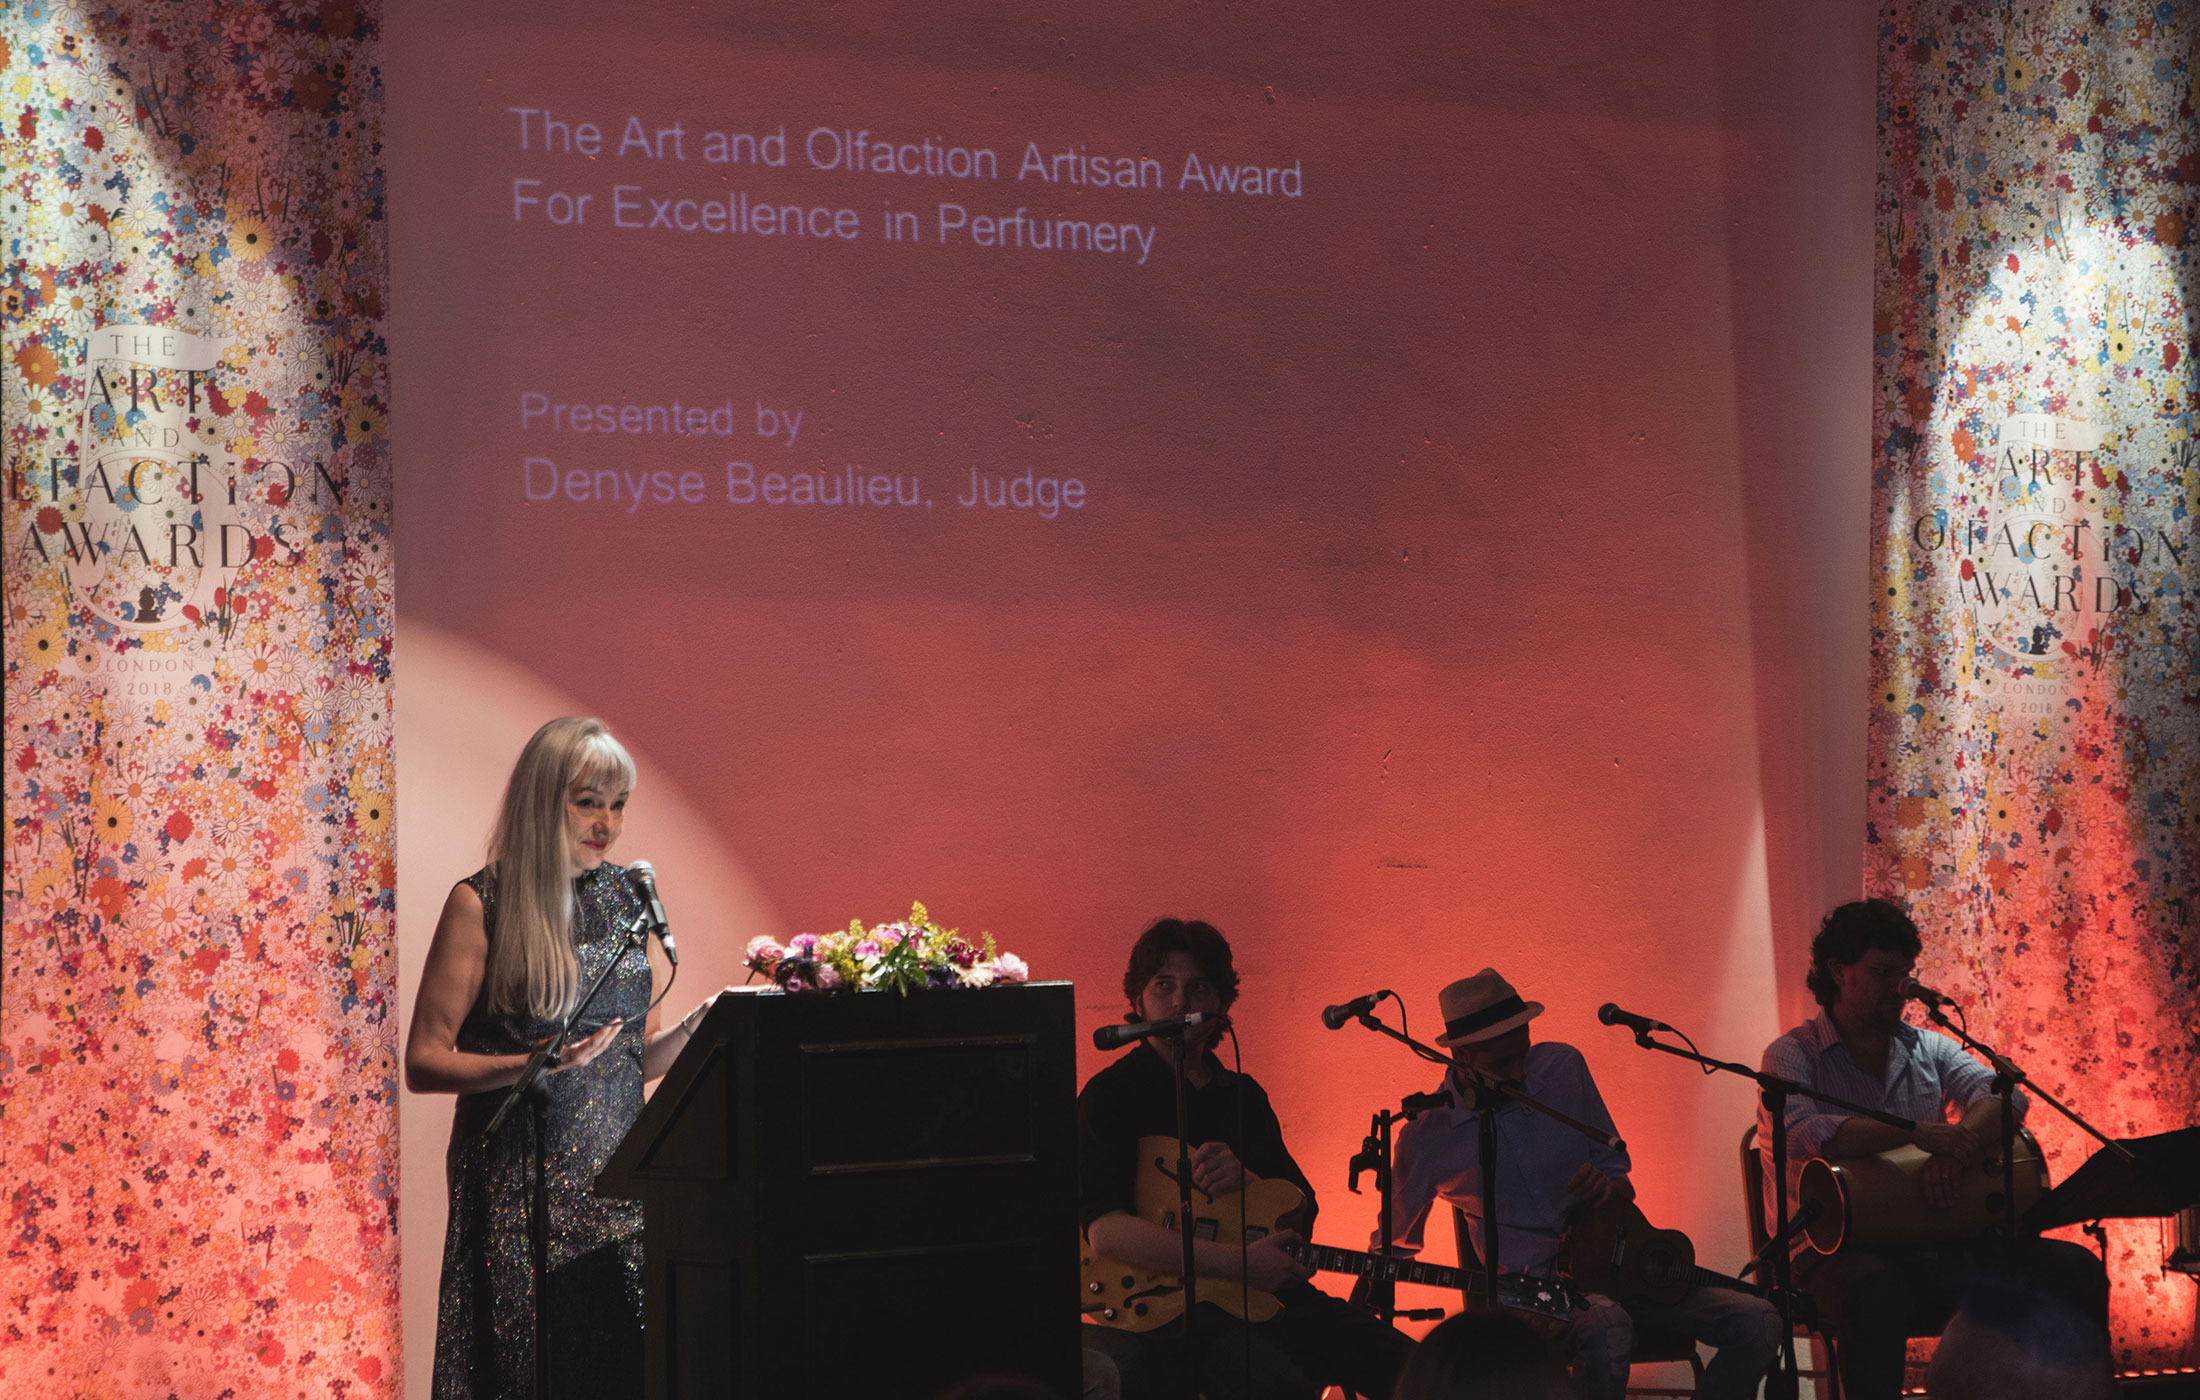 Denyse Beaulieu at The Art and Olfaction Awards, Photo by Marina Chichi